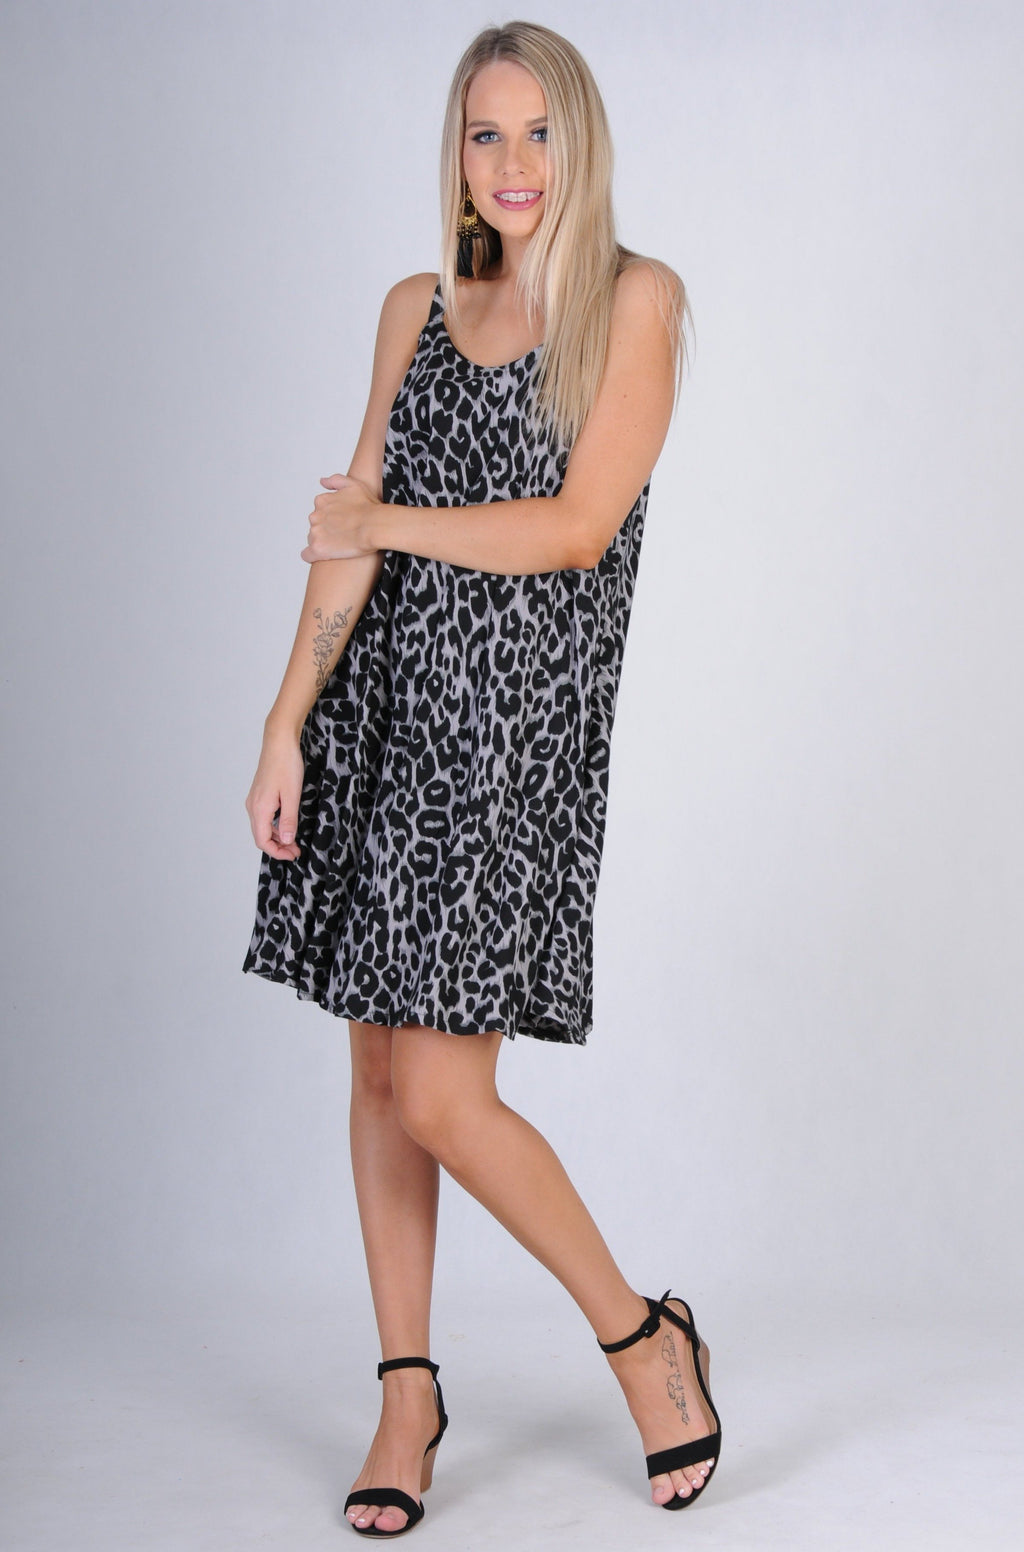 VGLD086 - MARGOT WIDE STRAP DRESS - JUNGLE LEOPARD BLACK